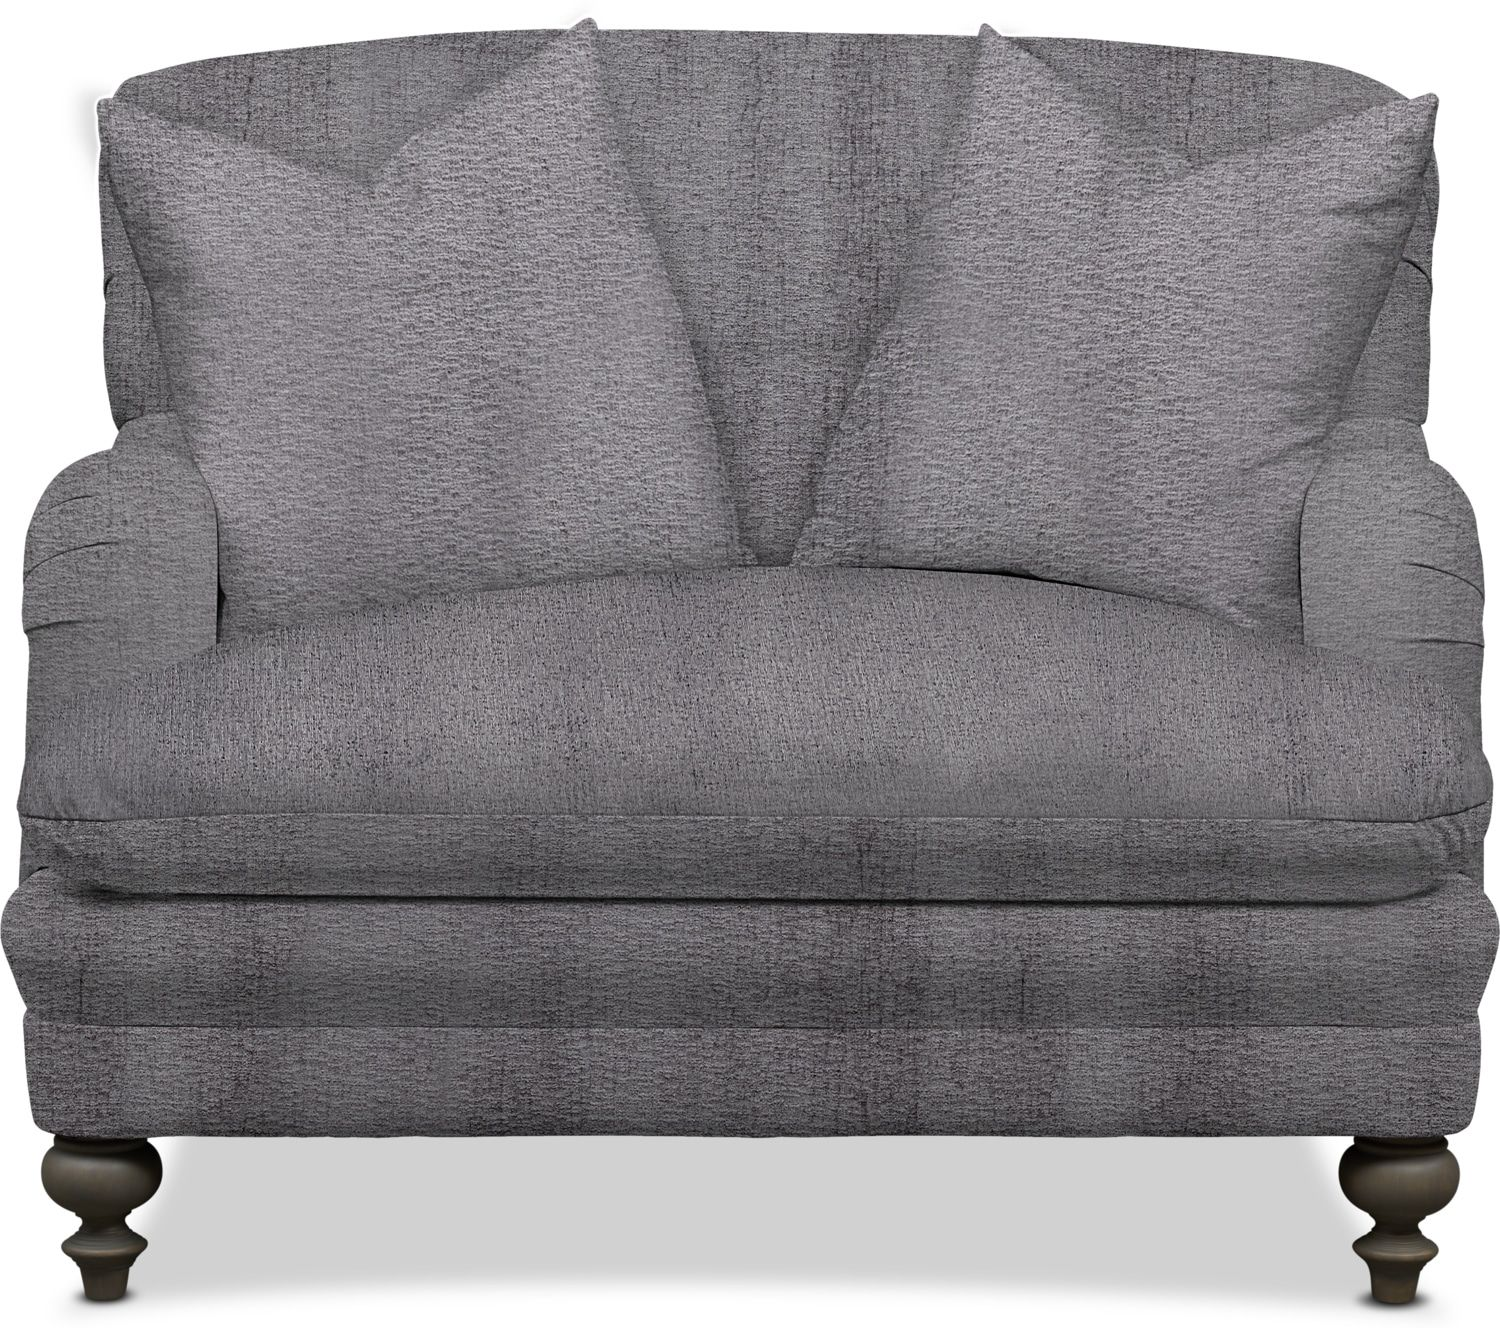 Kroehler Winnie Chair And A Half Living Large Charcoal Gray